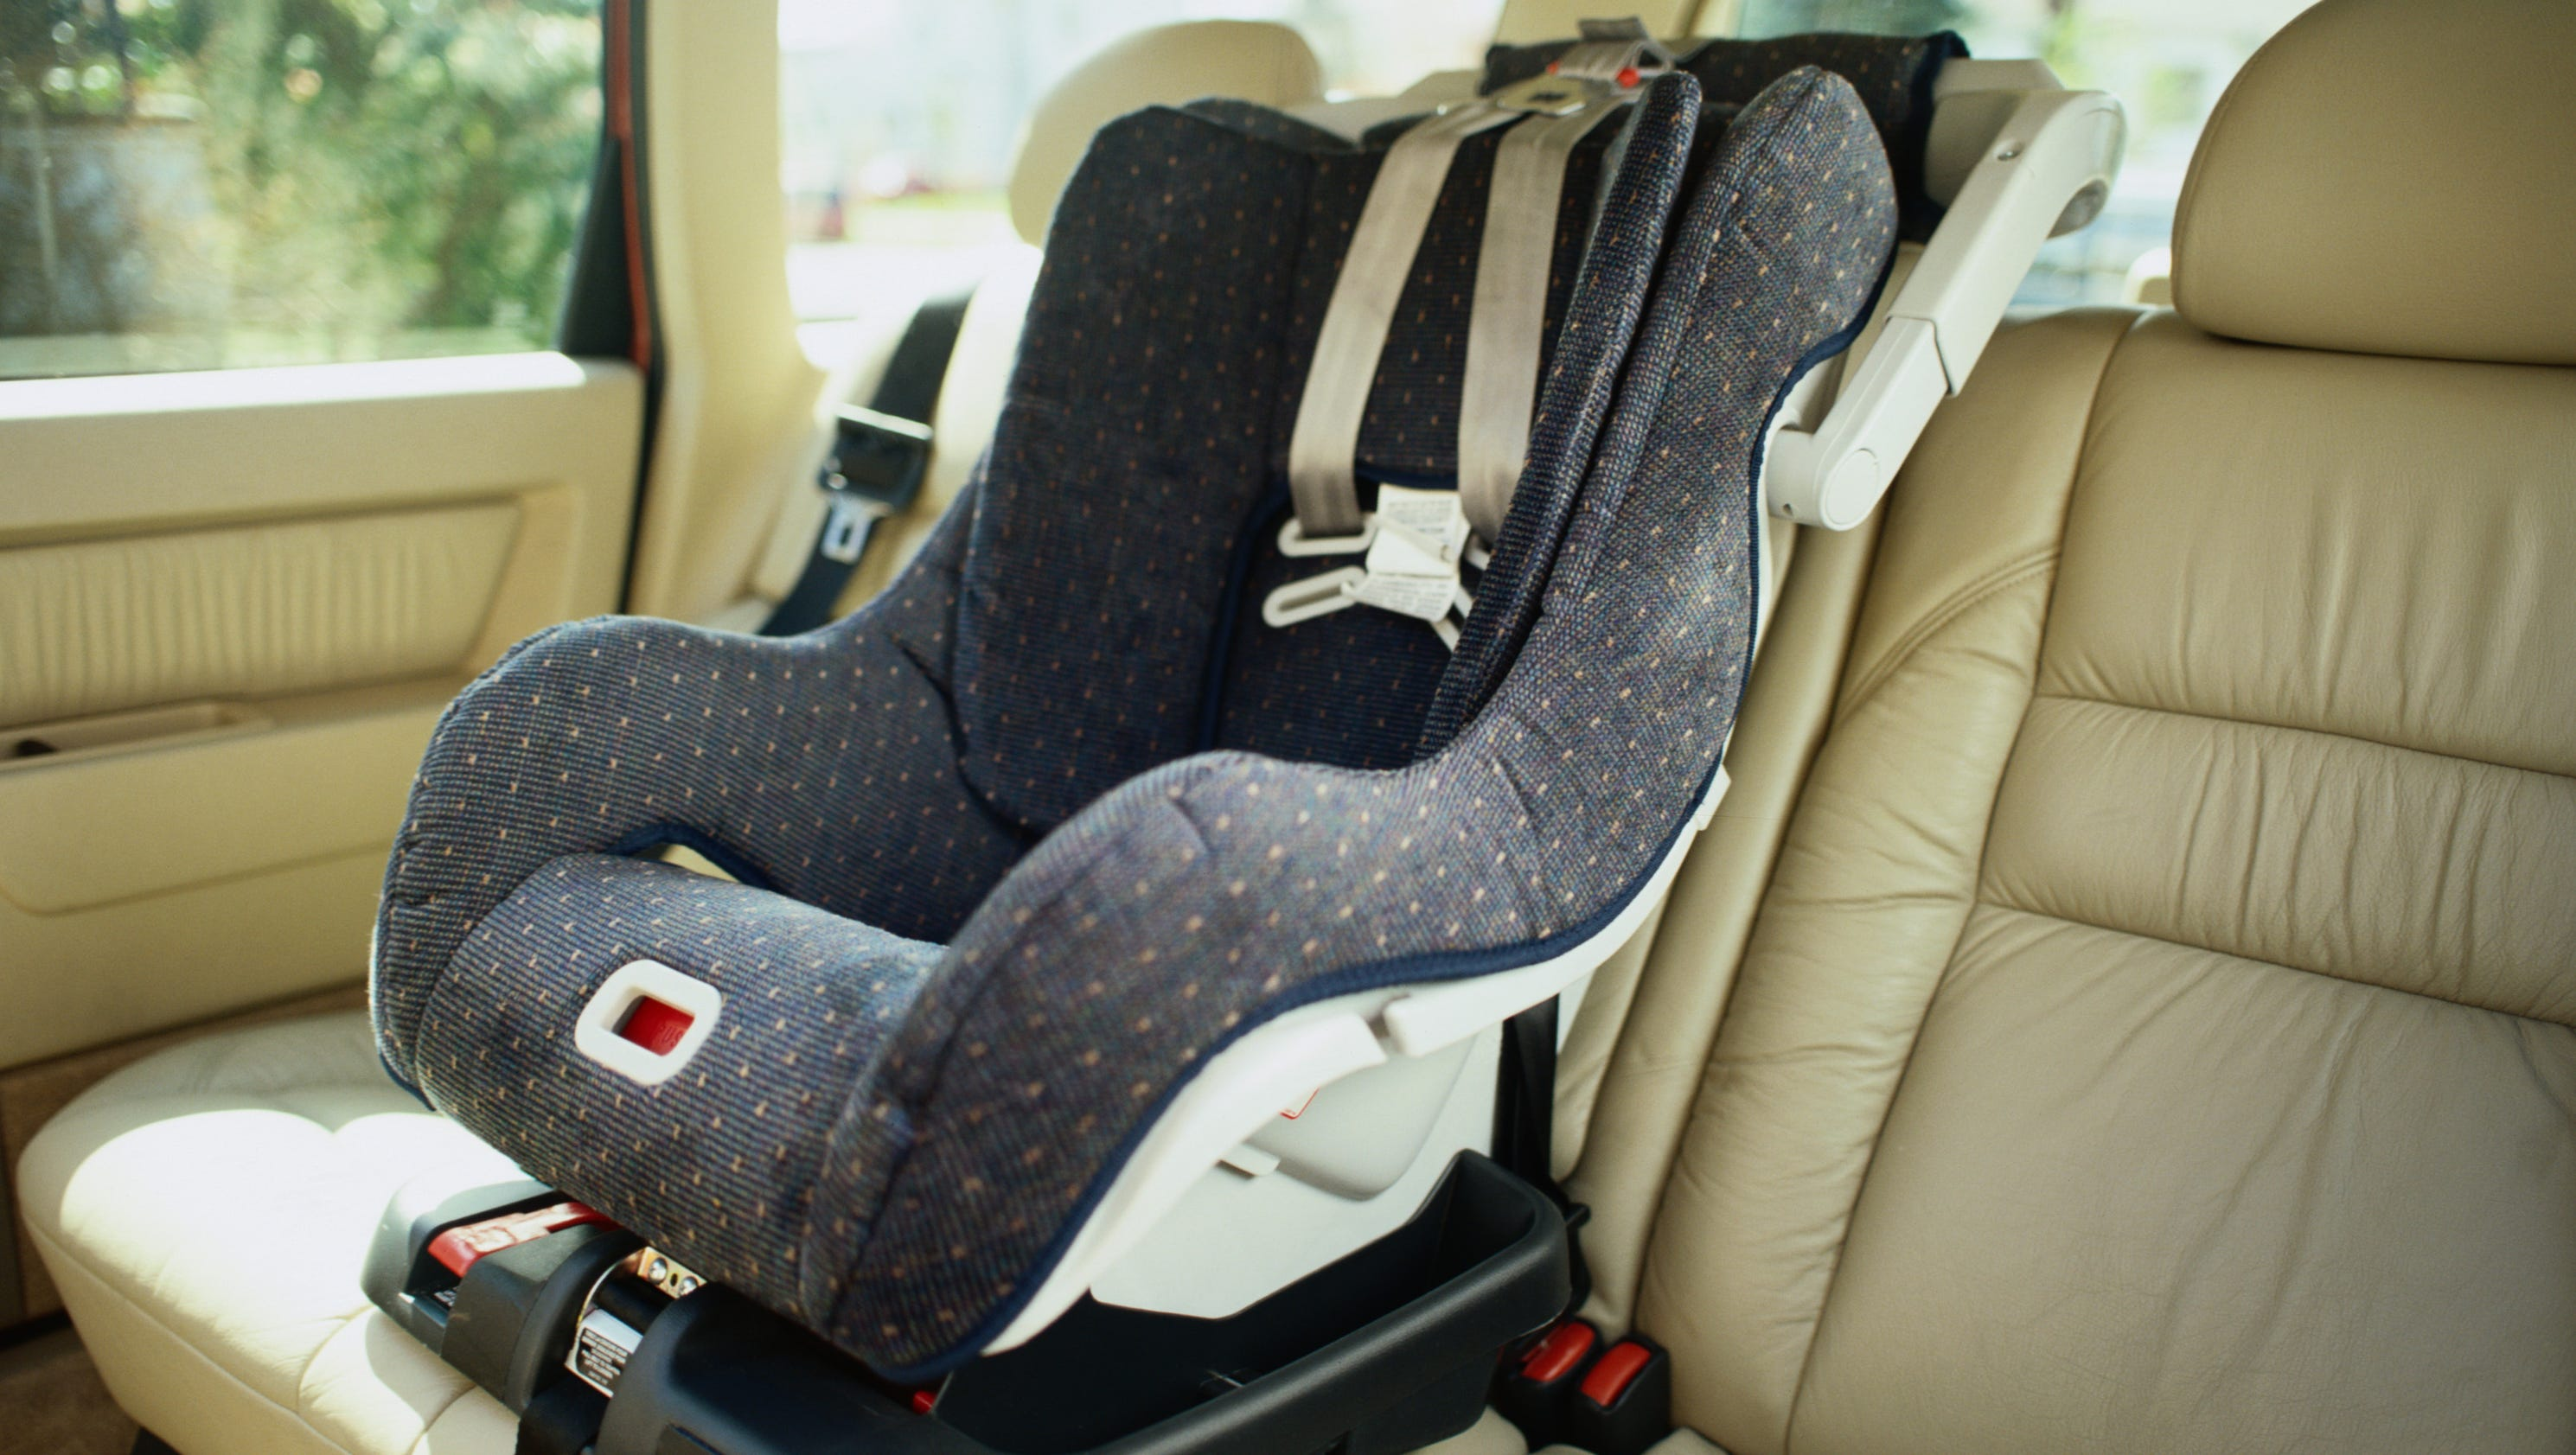 How To Dispose Of Old Car Seats